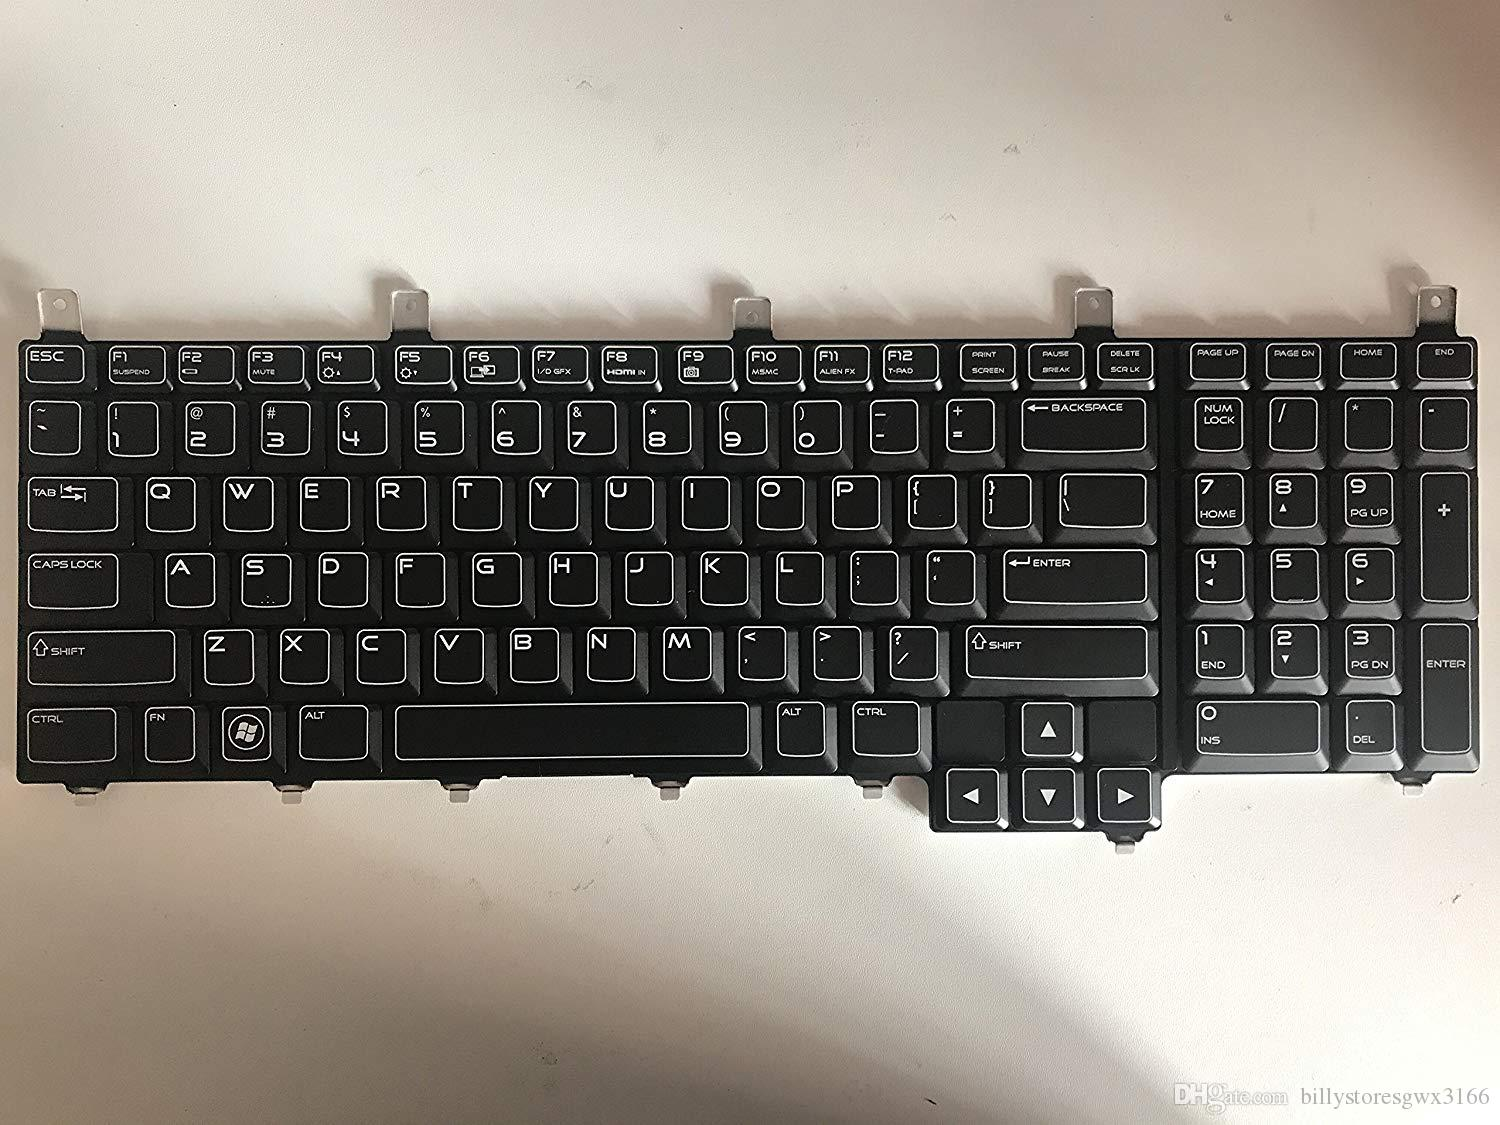 404d6442ae9 2019 Laptop Keyboard For Dell Alienware M17x R3 US Version With Backlit  Blue Cable NSK D8D01 PN:09M46F From Billystoresgwx3166, $65.33 | DHgate.Com